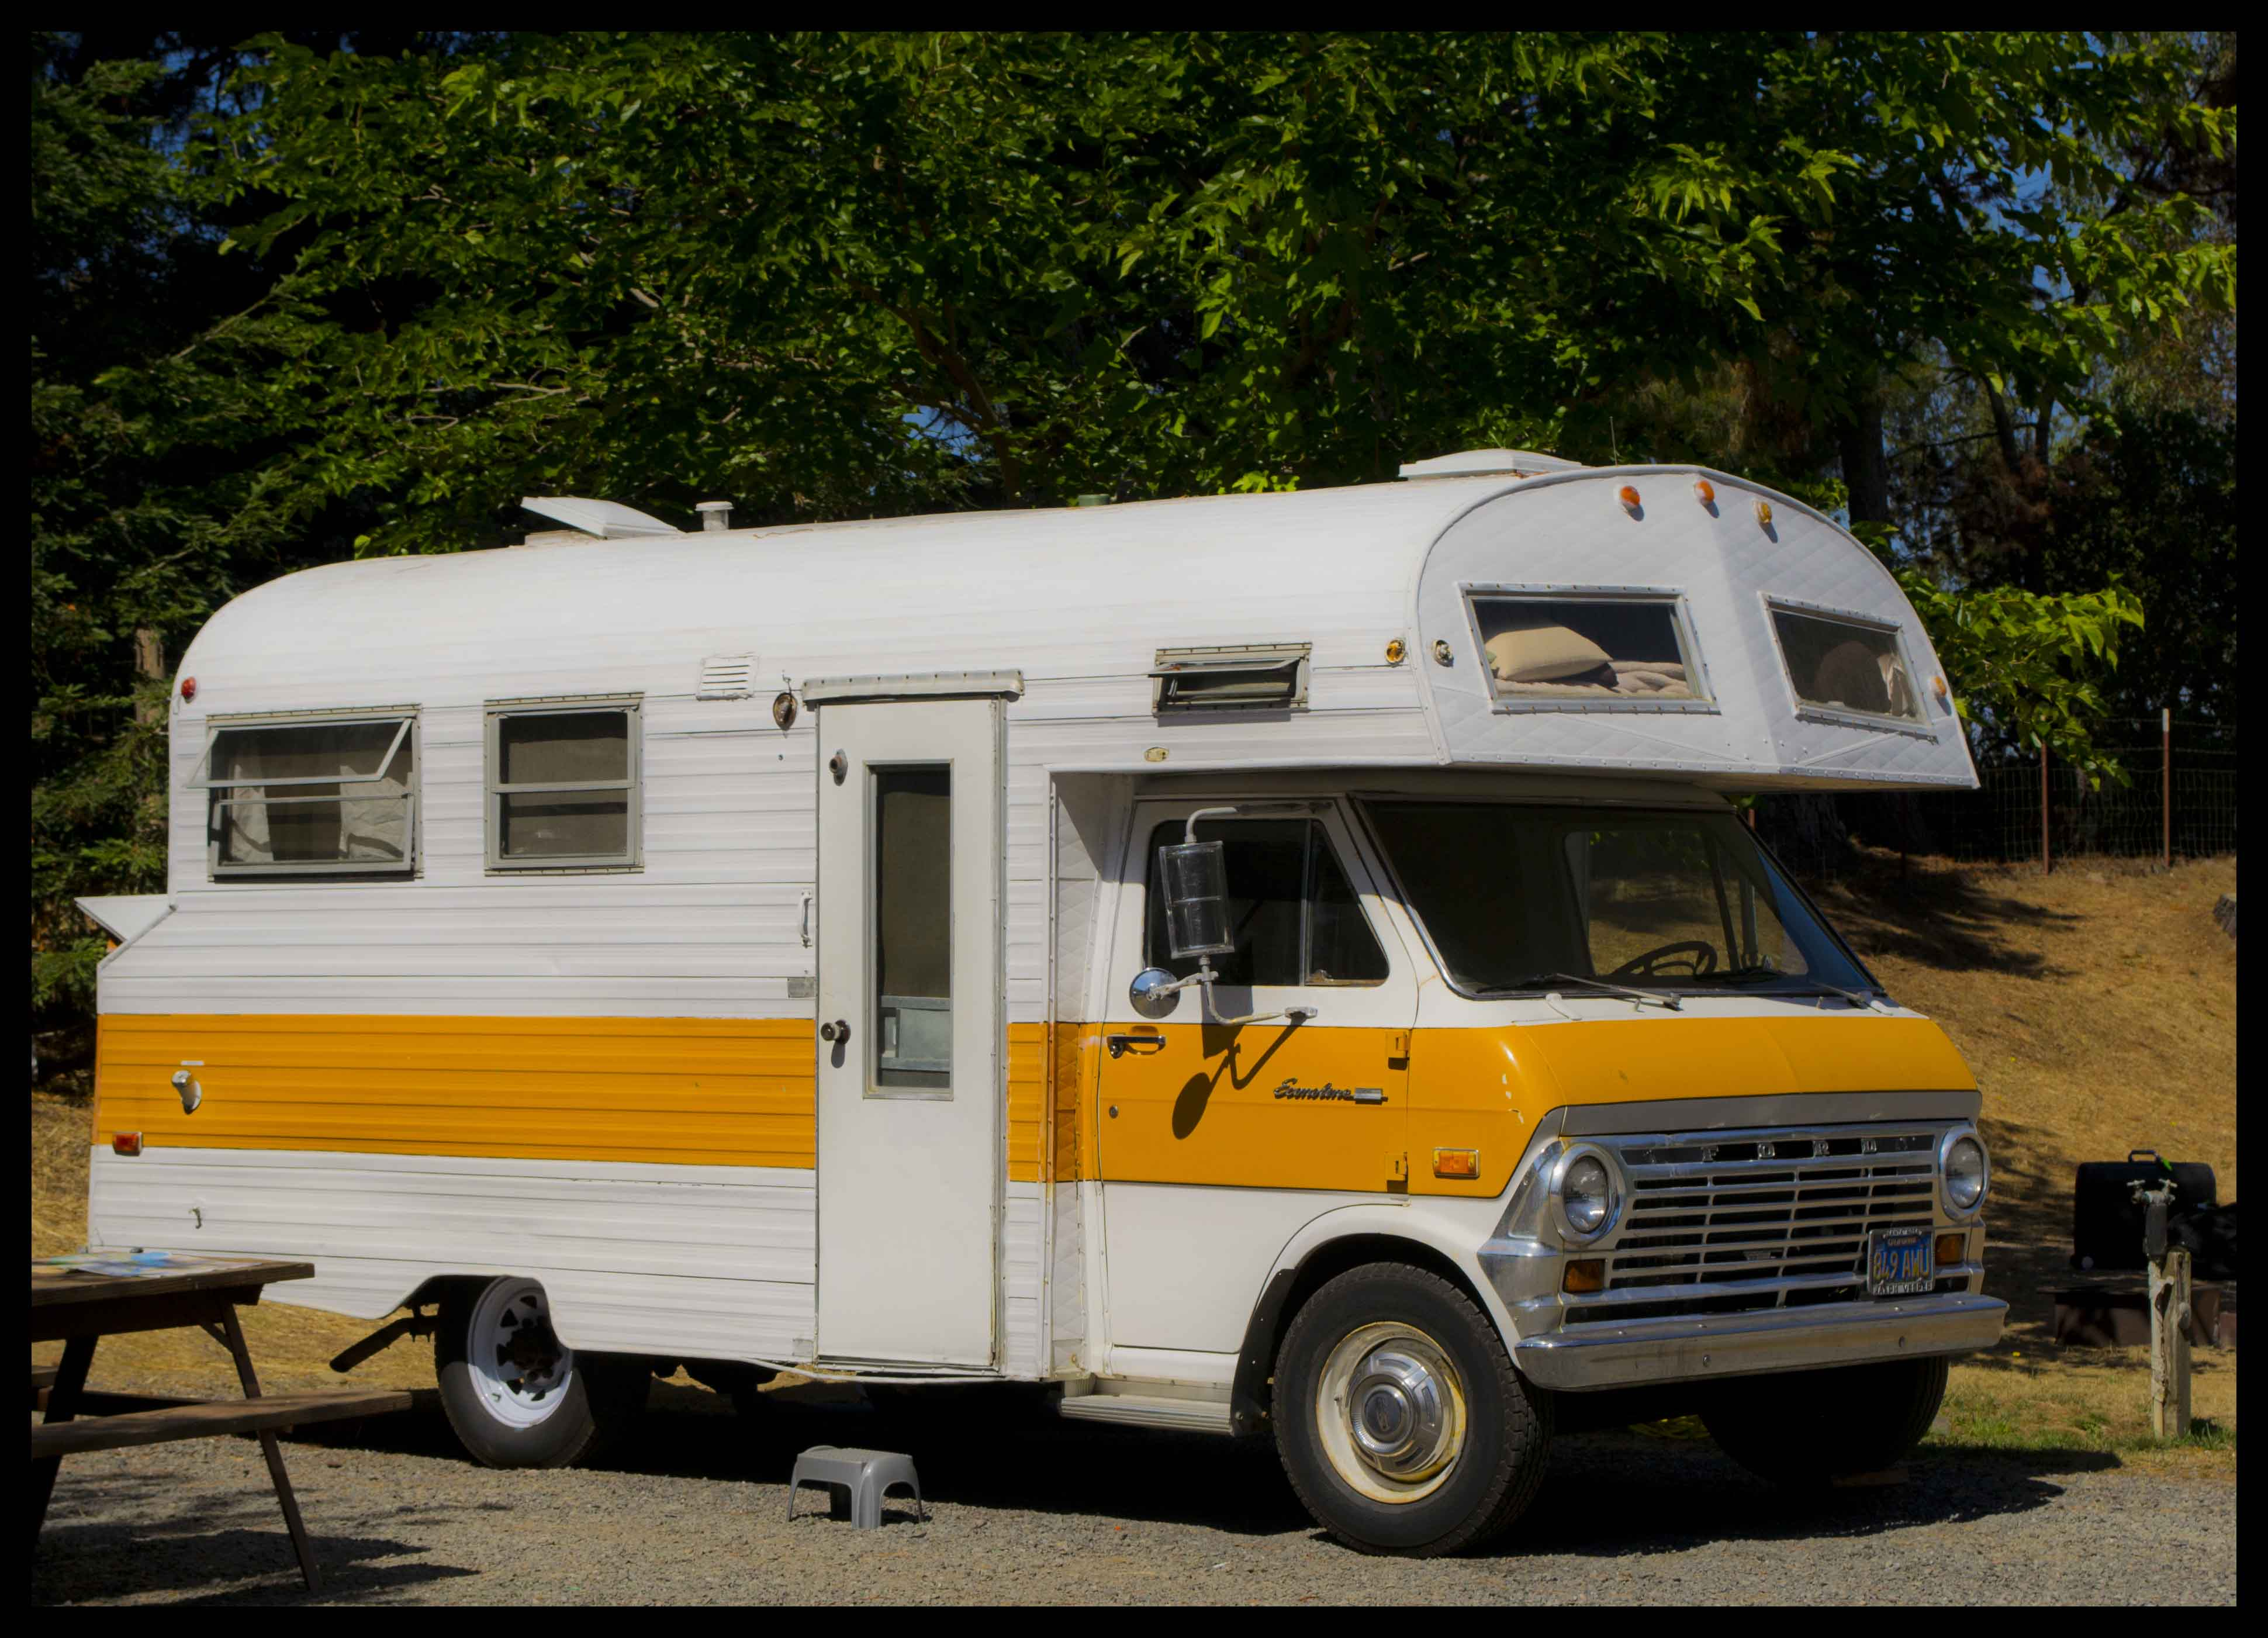 Auto Rv Buy And Sell Used Cars Trucks Rvs And More: Which RV Is Right For You?